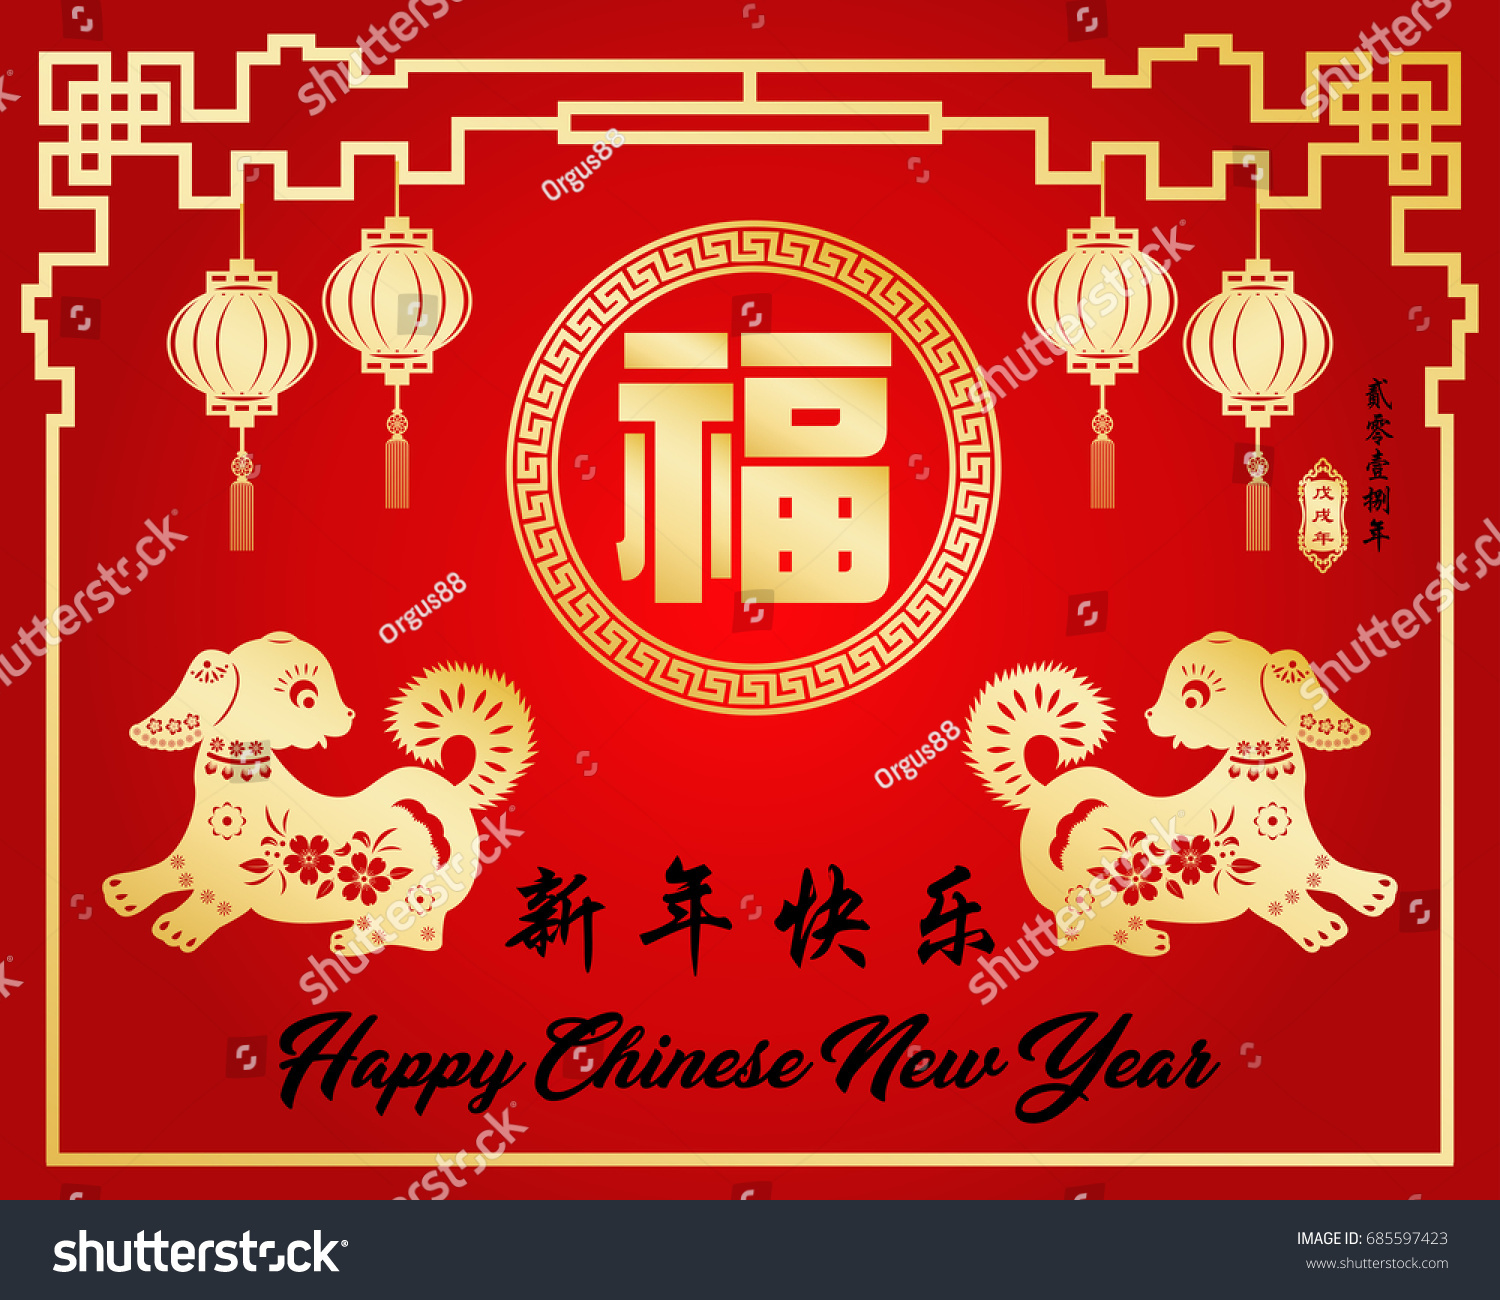 Chinese New Year 2018 Year Dog Stock Vector 2018 685597423